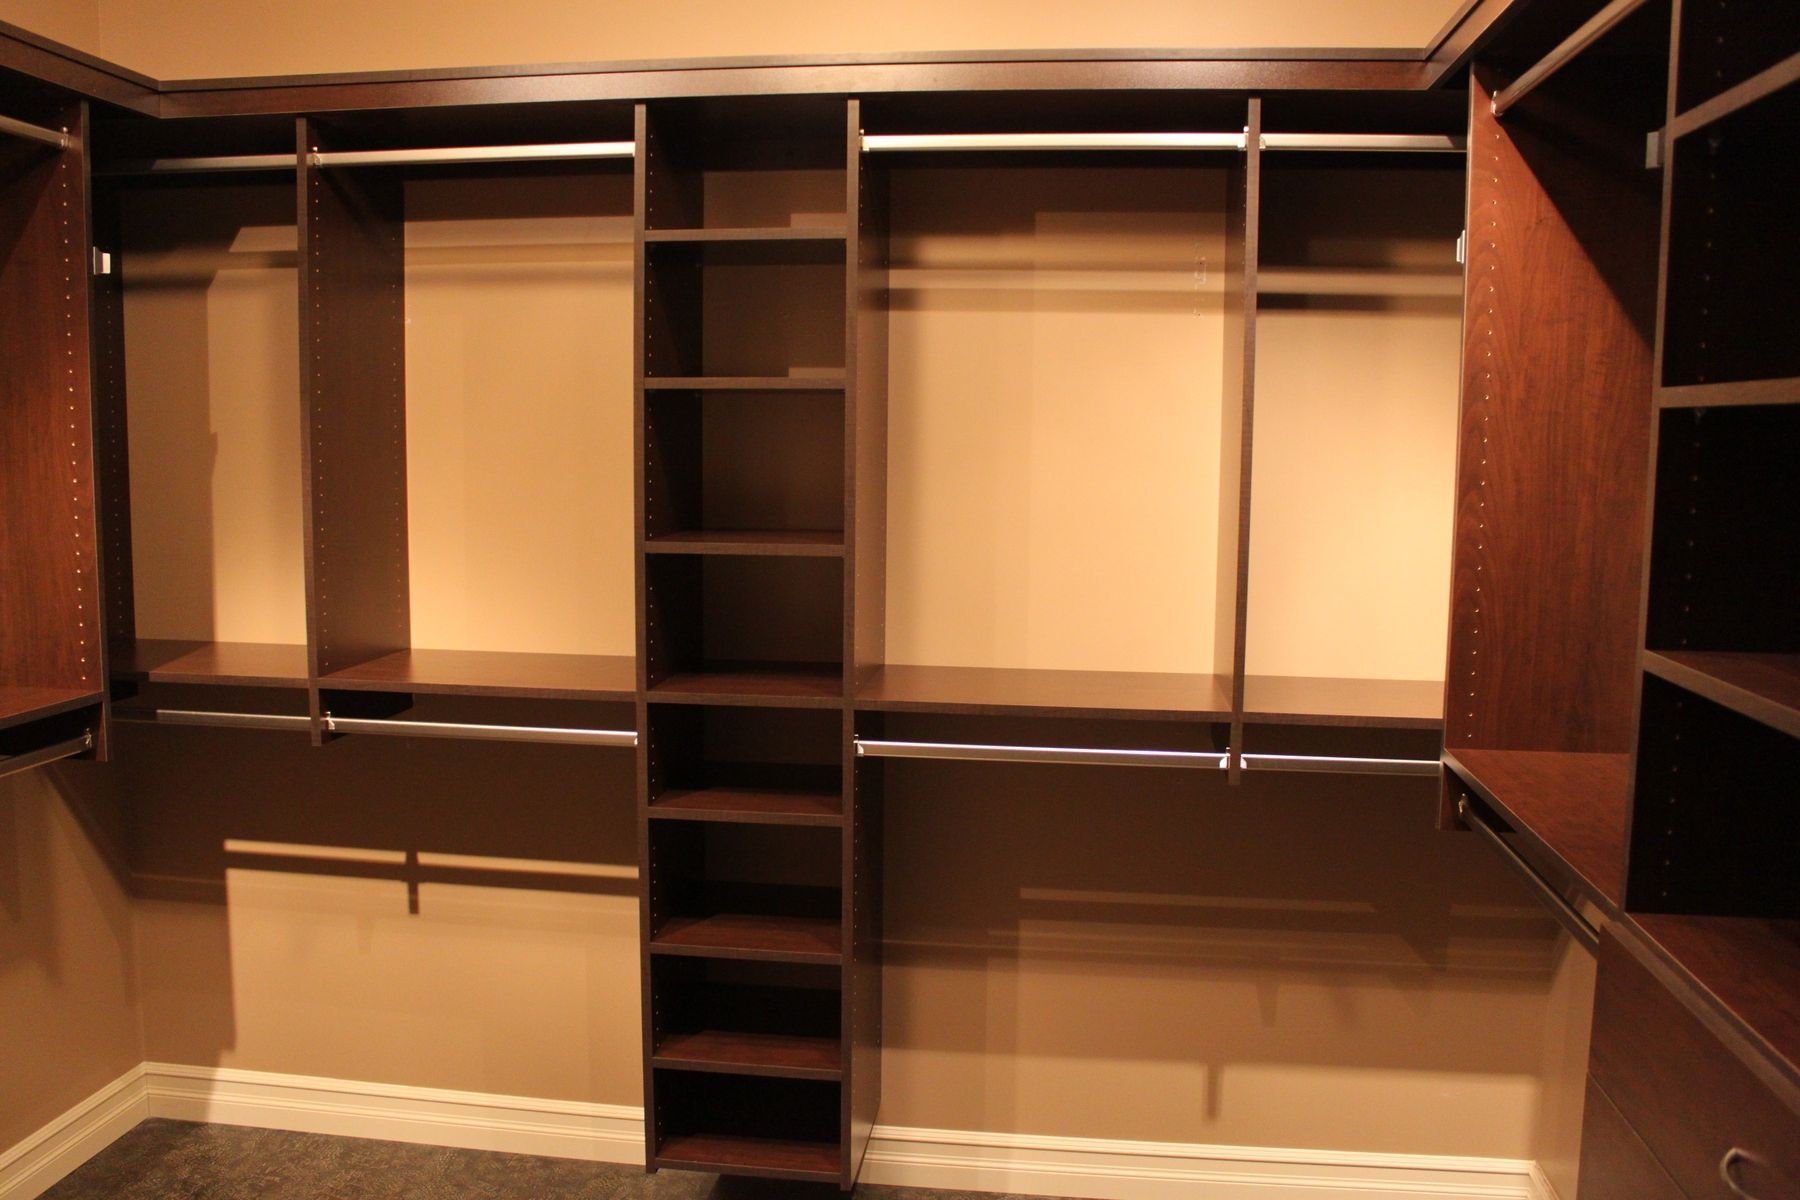 Hand Crafted Custom Walk In Closet By Peace Country Interiors amp Millwork CustomMadecom